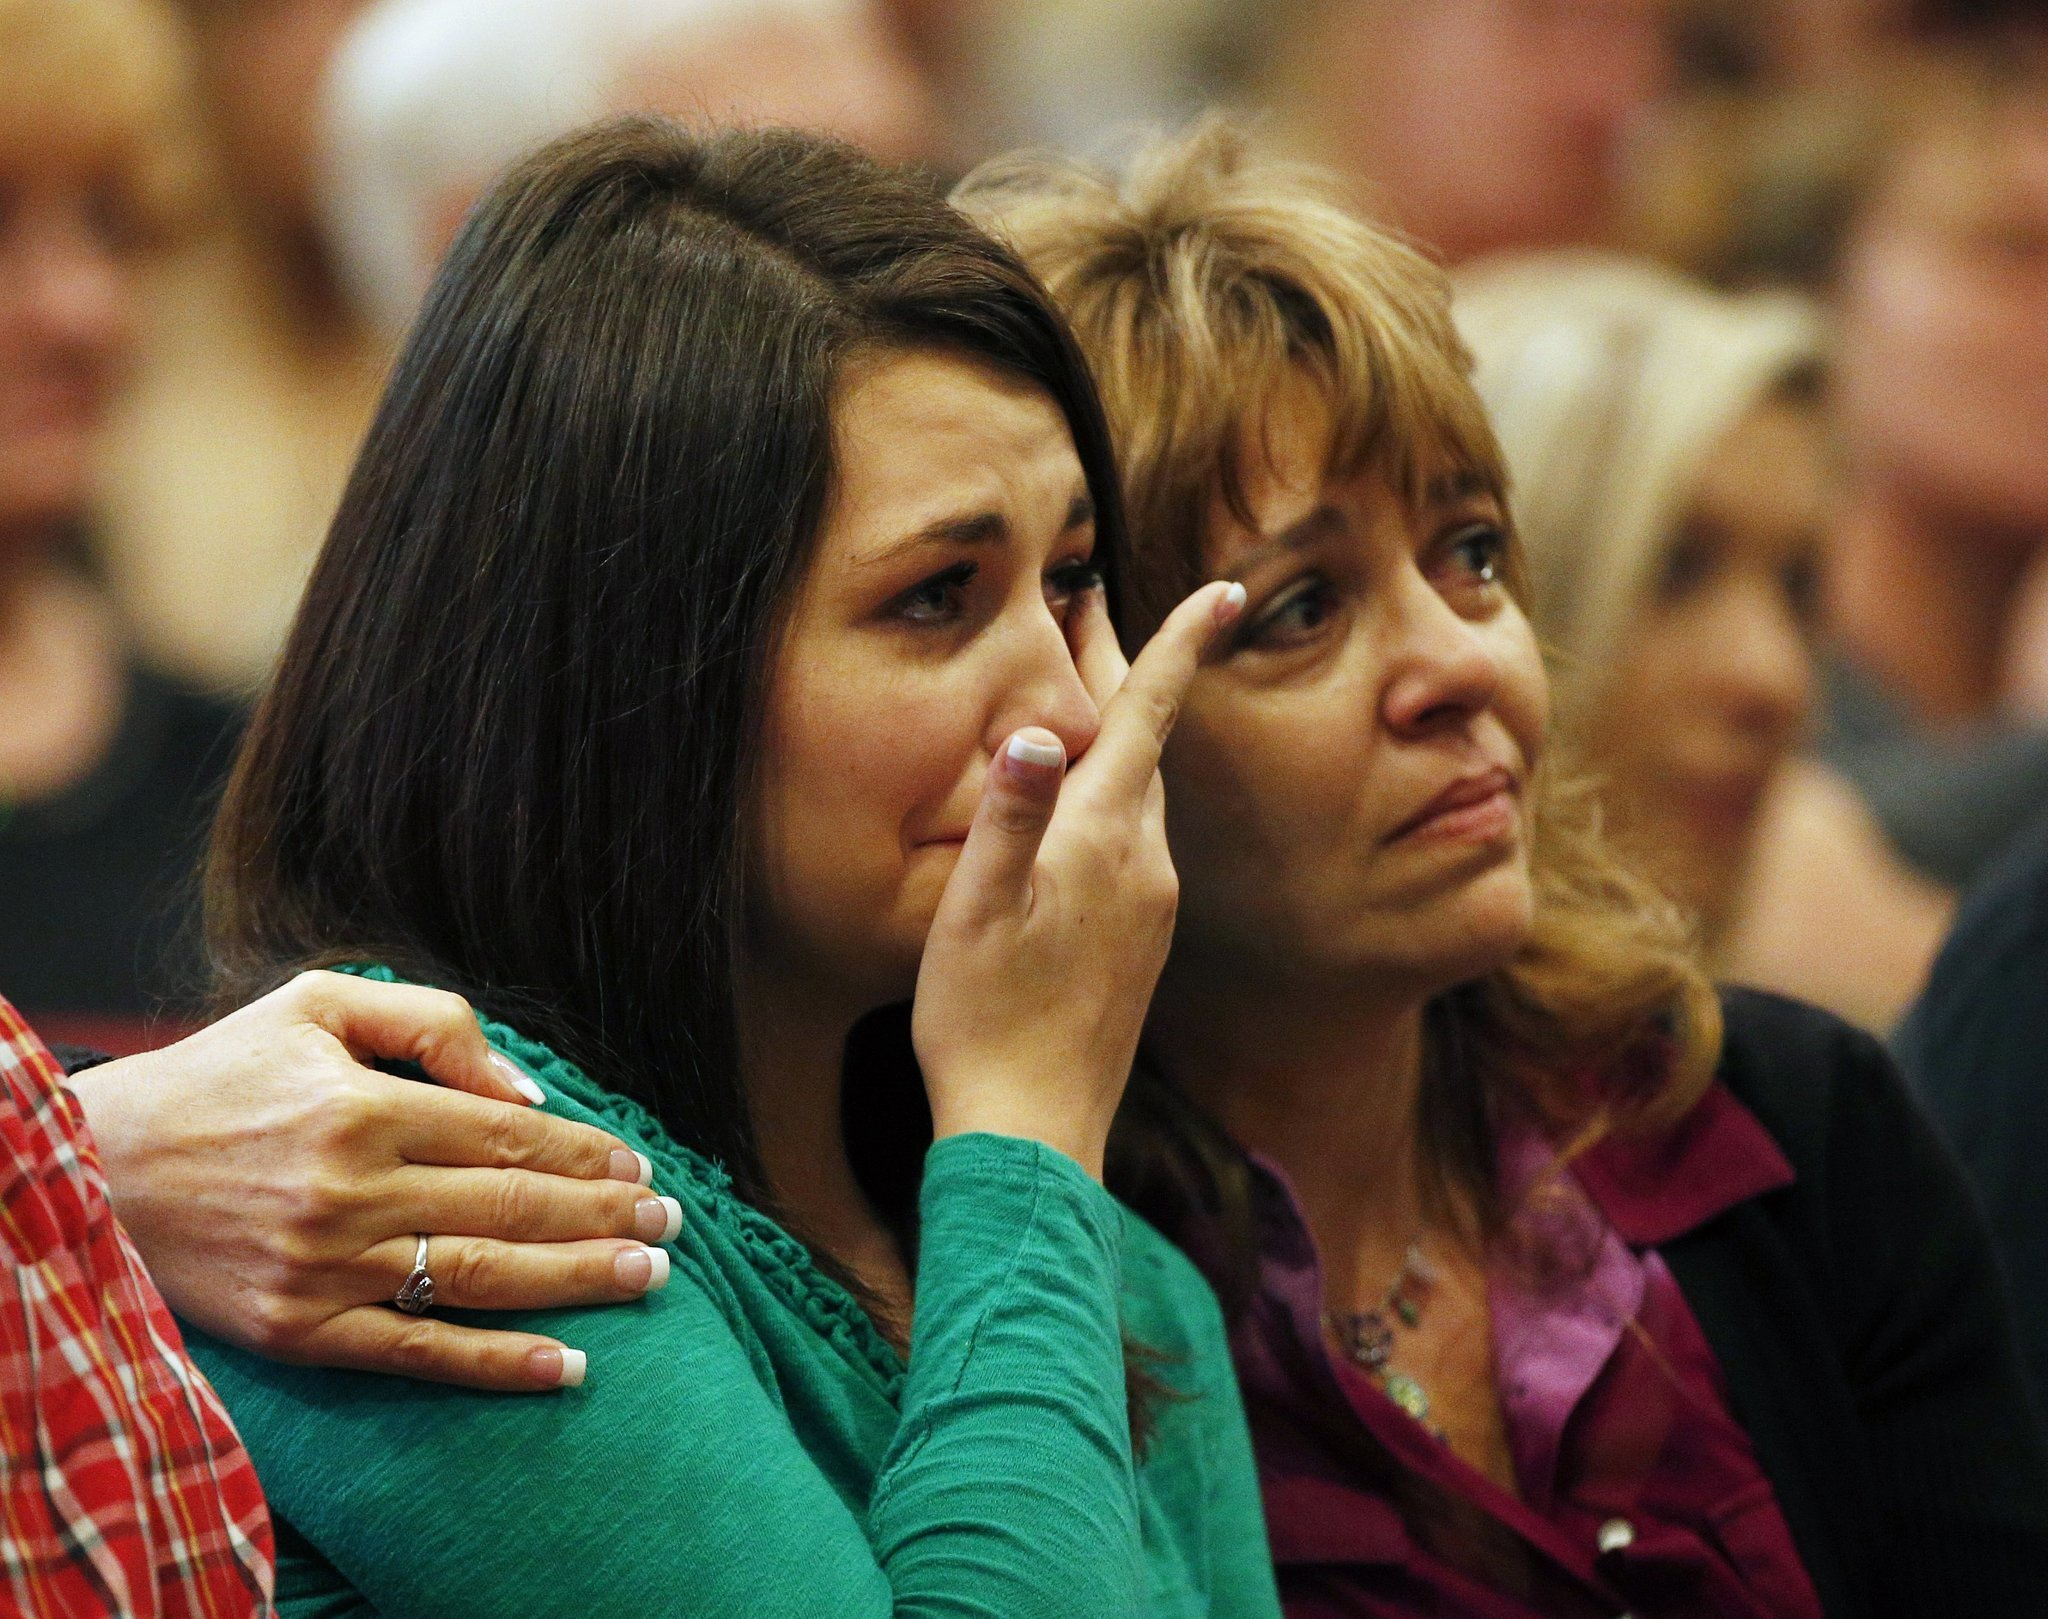 Oregon gunman was kicked out of Army, studied mass shooters